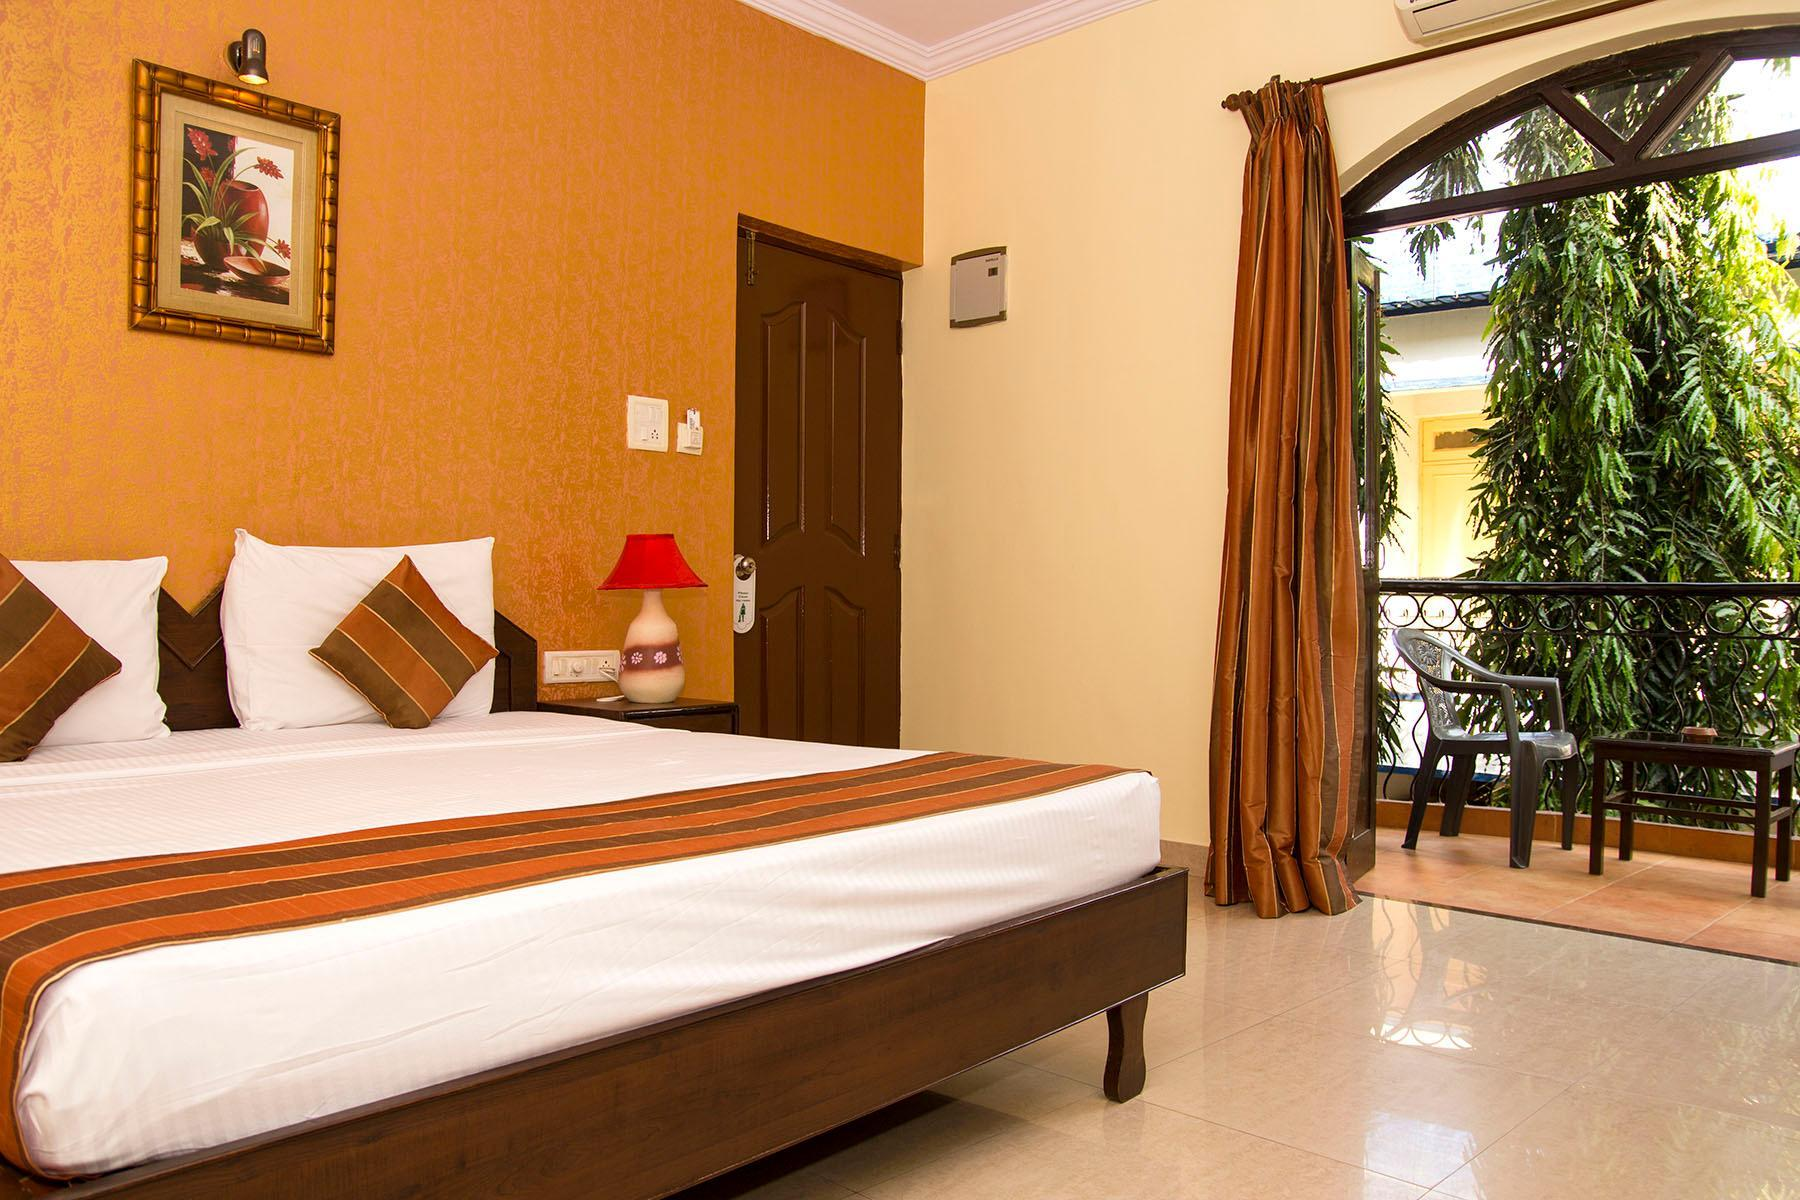 Nazri Resort, Goa, India - Photos, Room Rates & Promotions